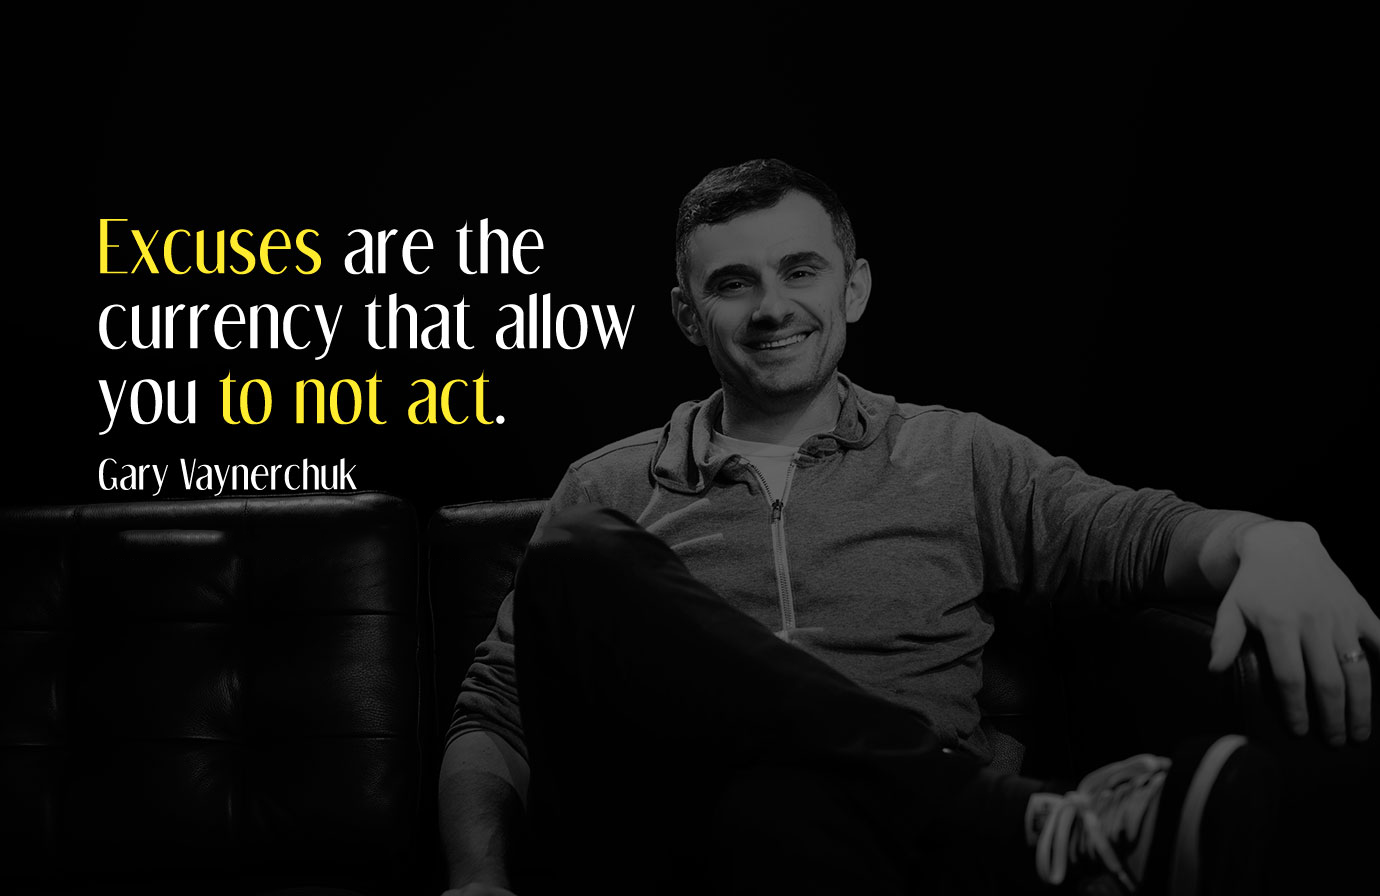 Excuses are the currency that allow you to not act. Gary Vaynerchuk